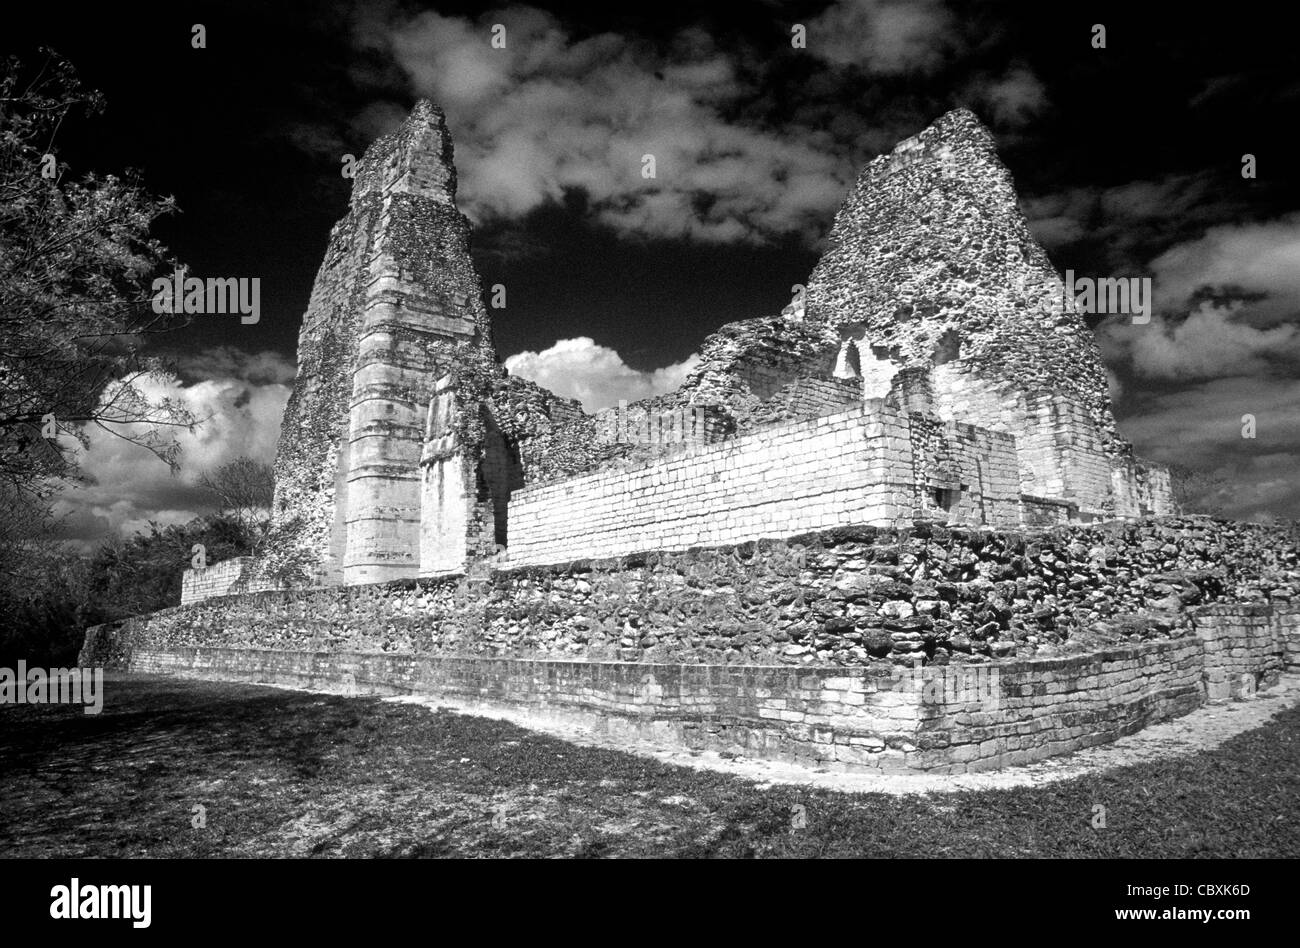 Structure 1 at the Mayan ruins of Xpujil, Campeche, Mexico. - Stock Image